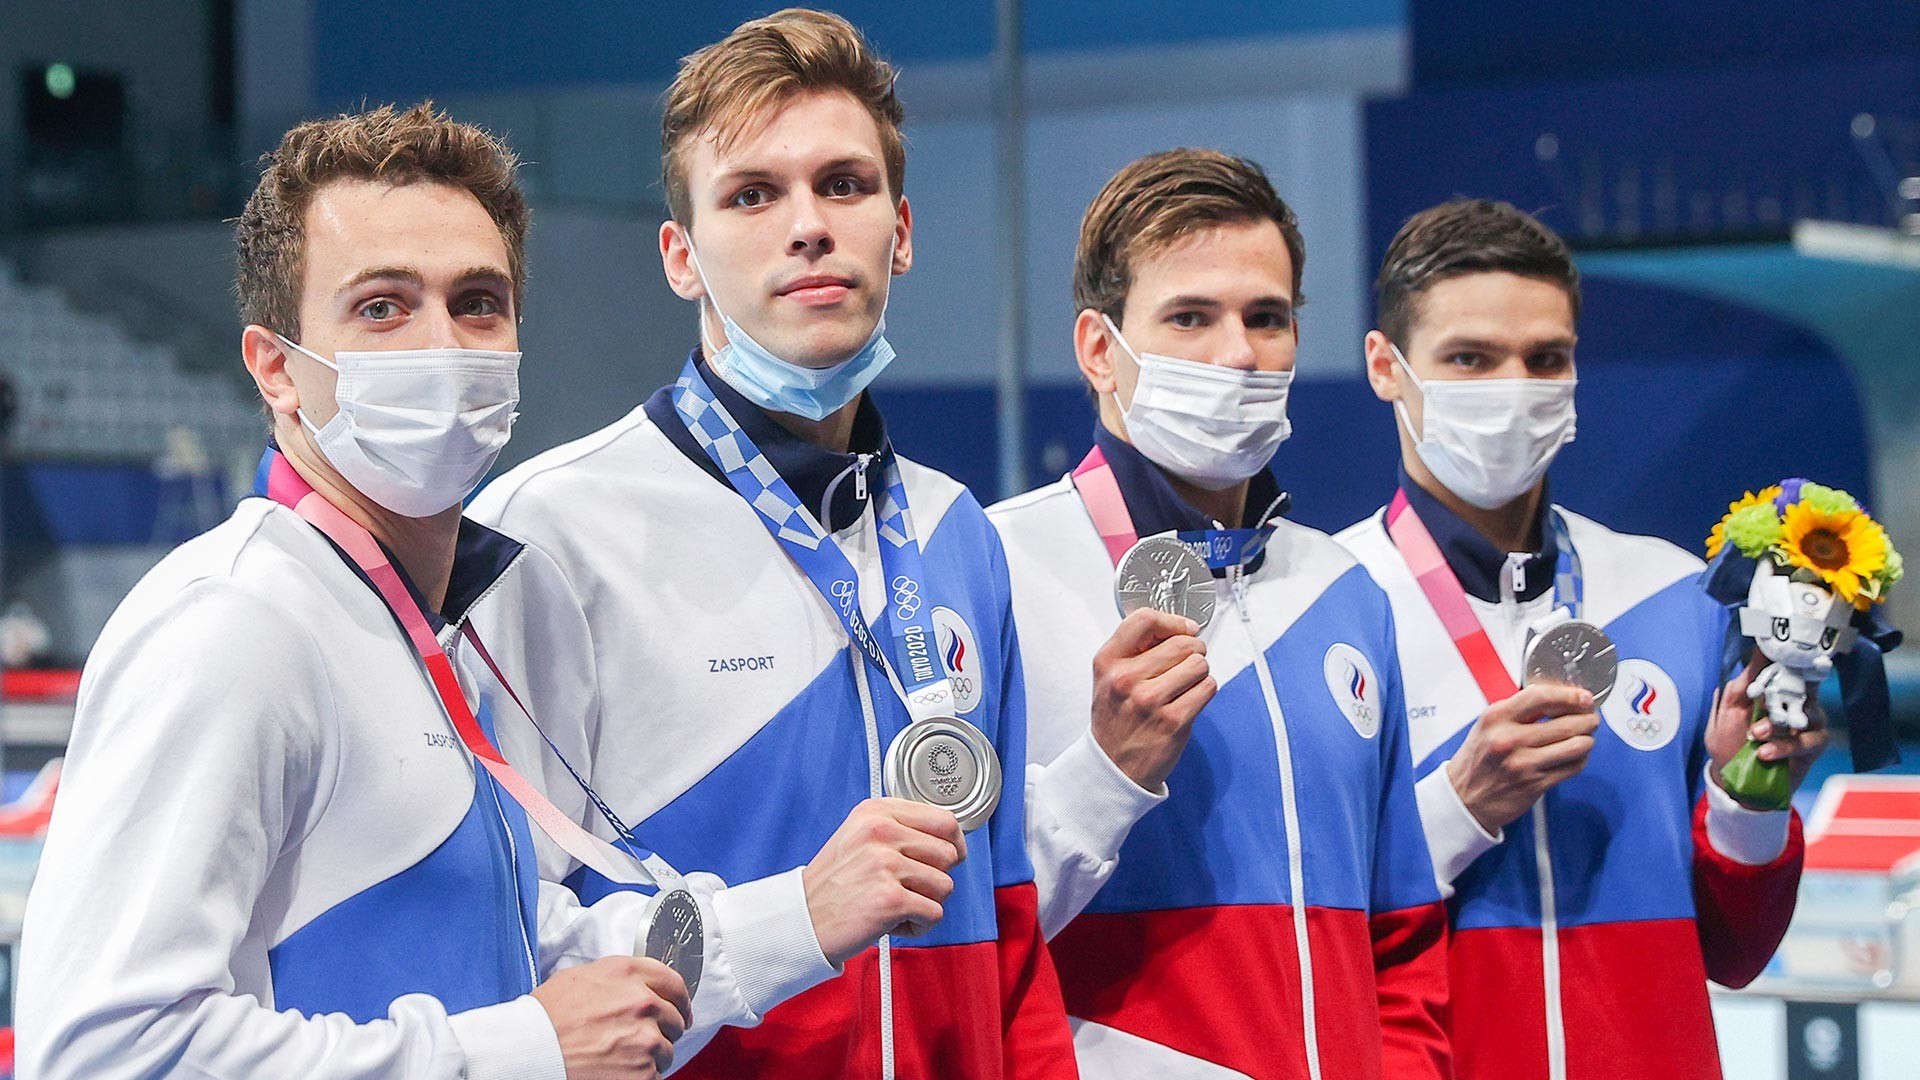 ROC swimmers pose with their silver medals during the victory ceremony for the men's 4x200m freestyle relay final at Tokyo Aquatics Centre during the 2020 Summer Olympic Games